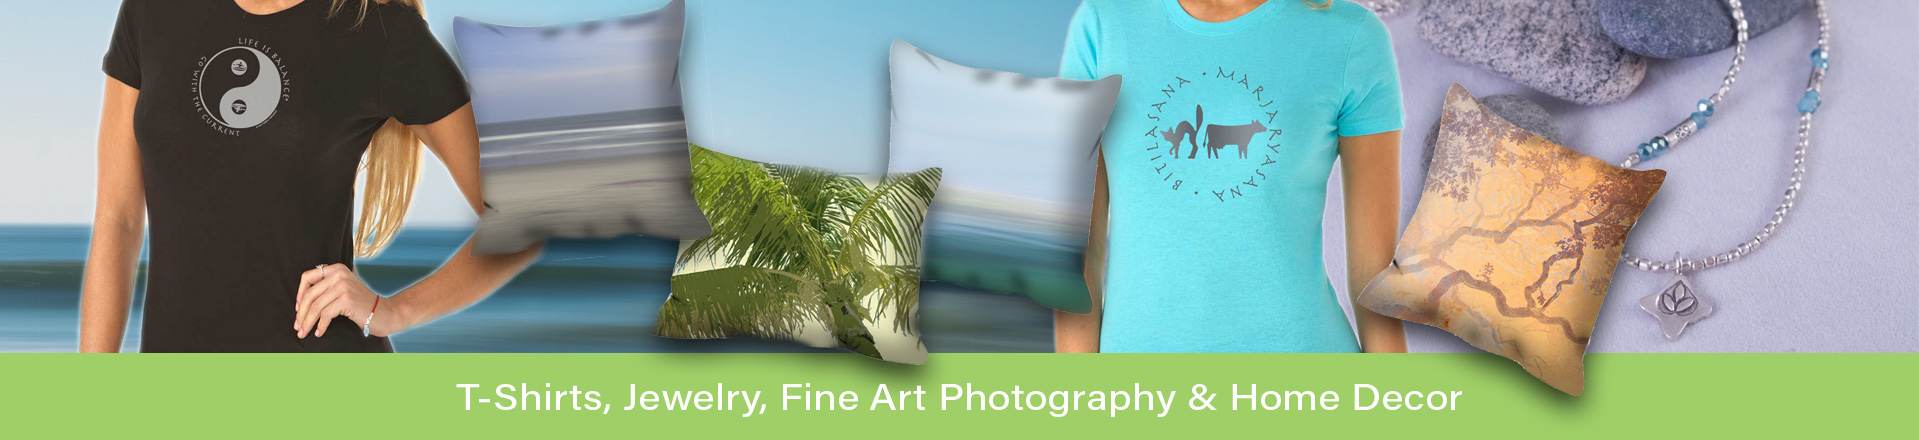 shop for t-shirts, jewelry, fine art photography and home decor